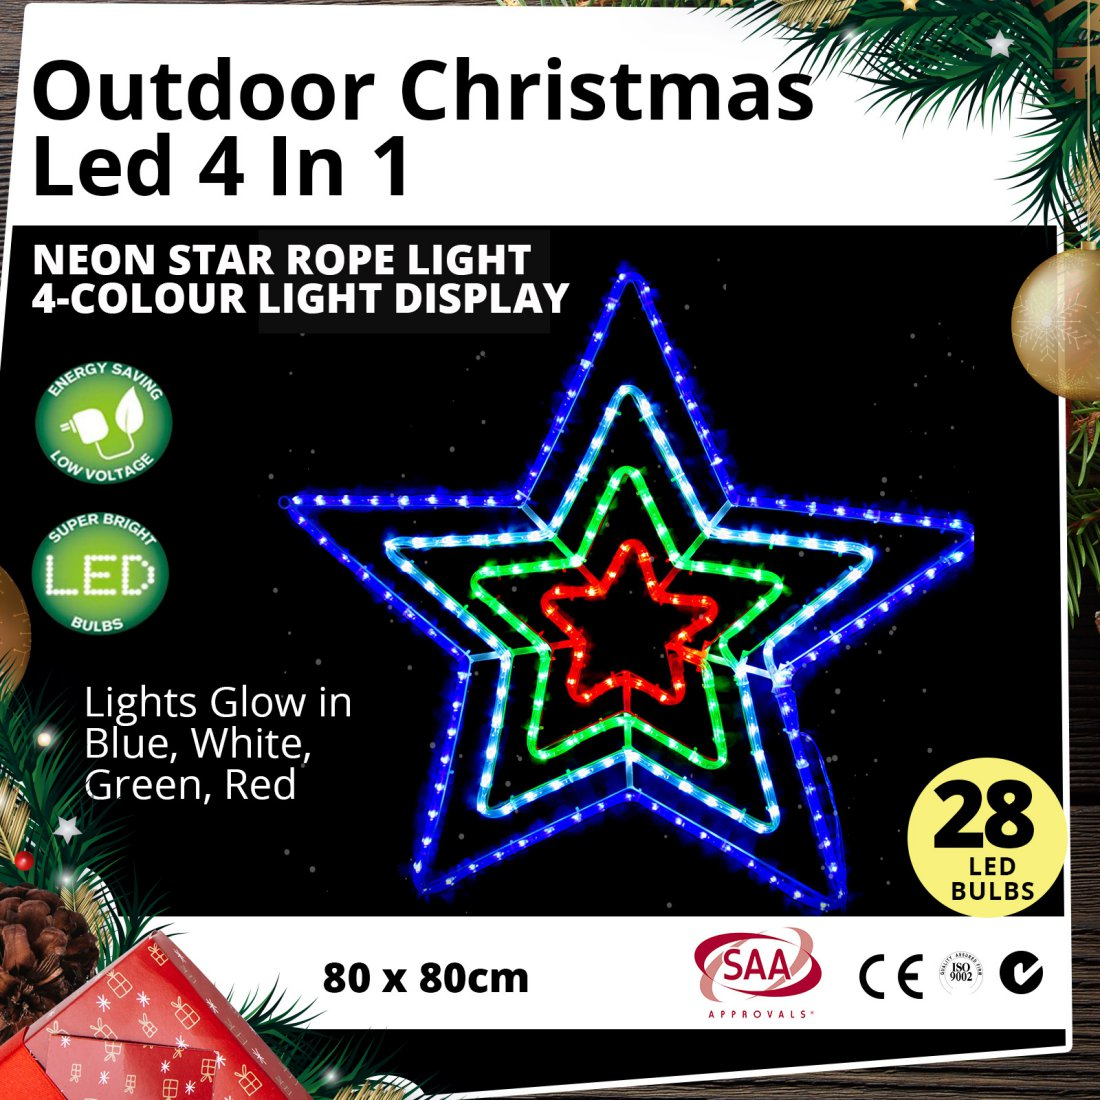 Outdoor LED 4 in 1 Neon Star Rope Light 4-Colour Christmas Light Display